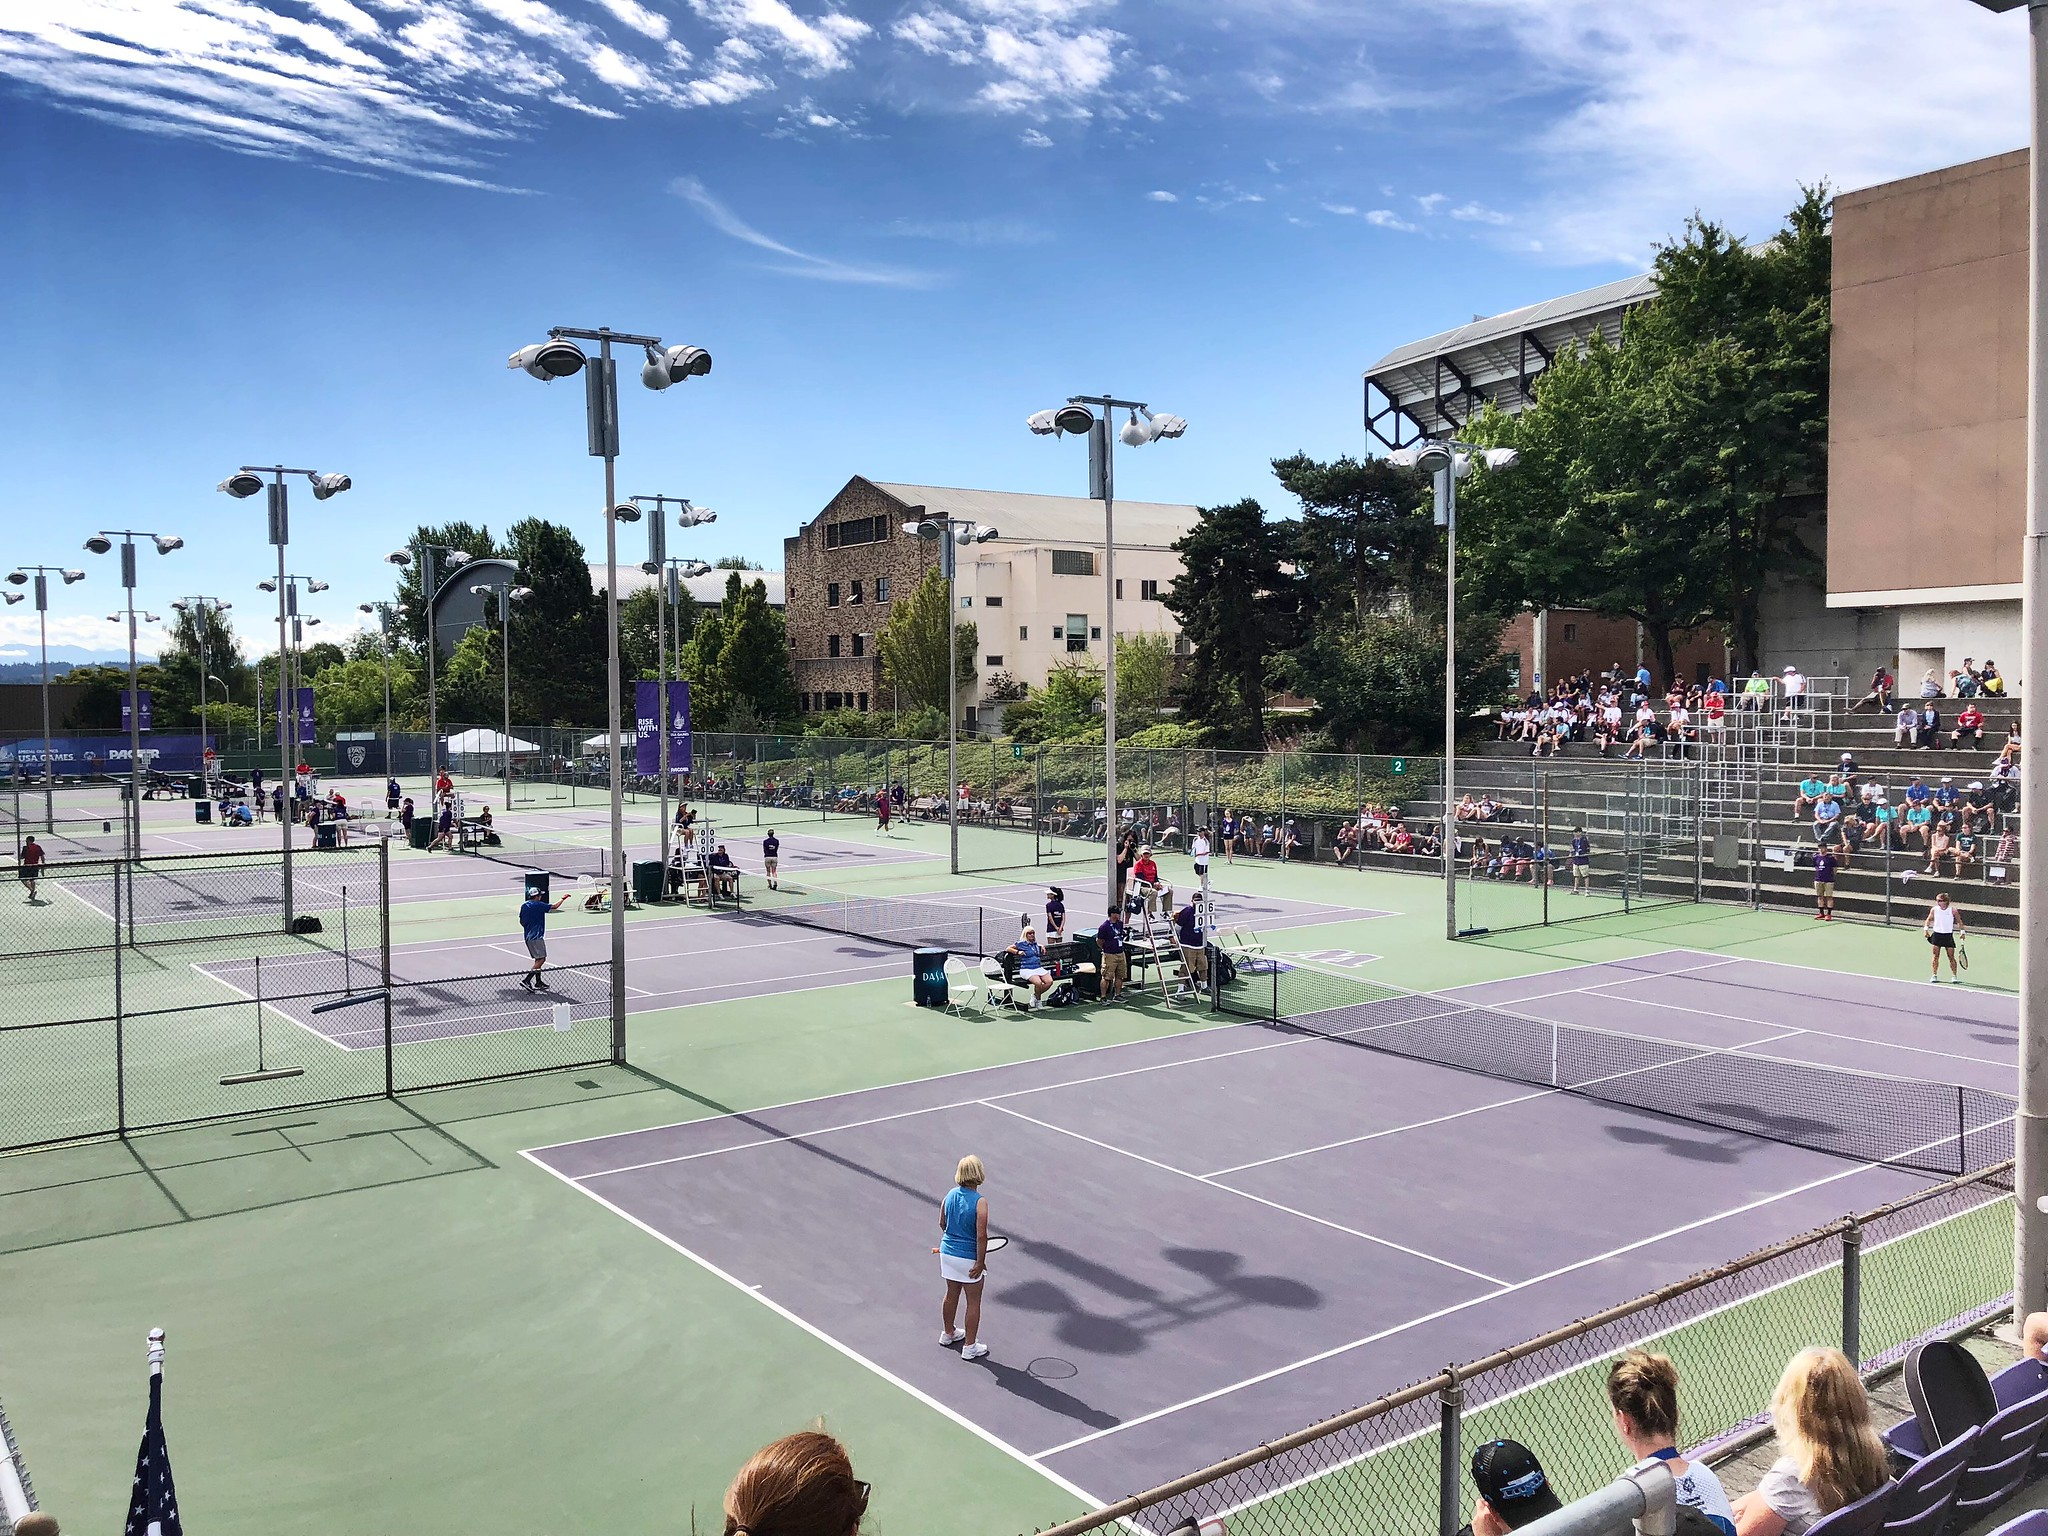 Took in some tennis on the last day of competition